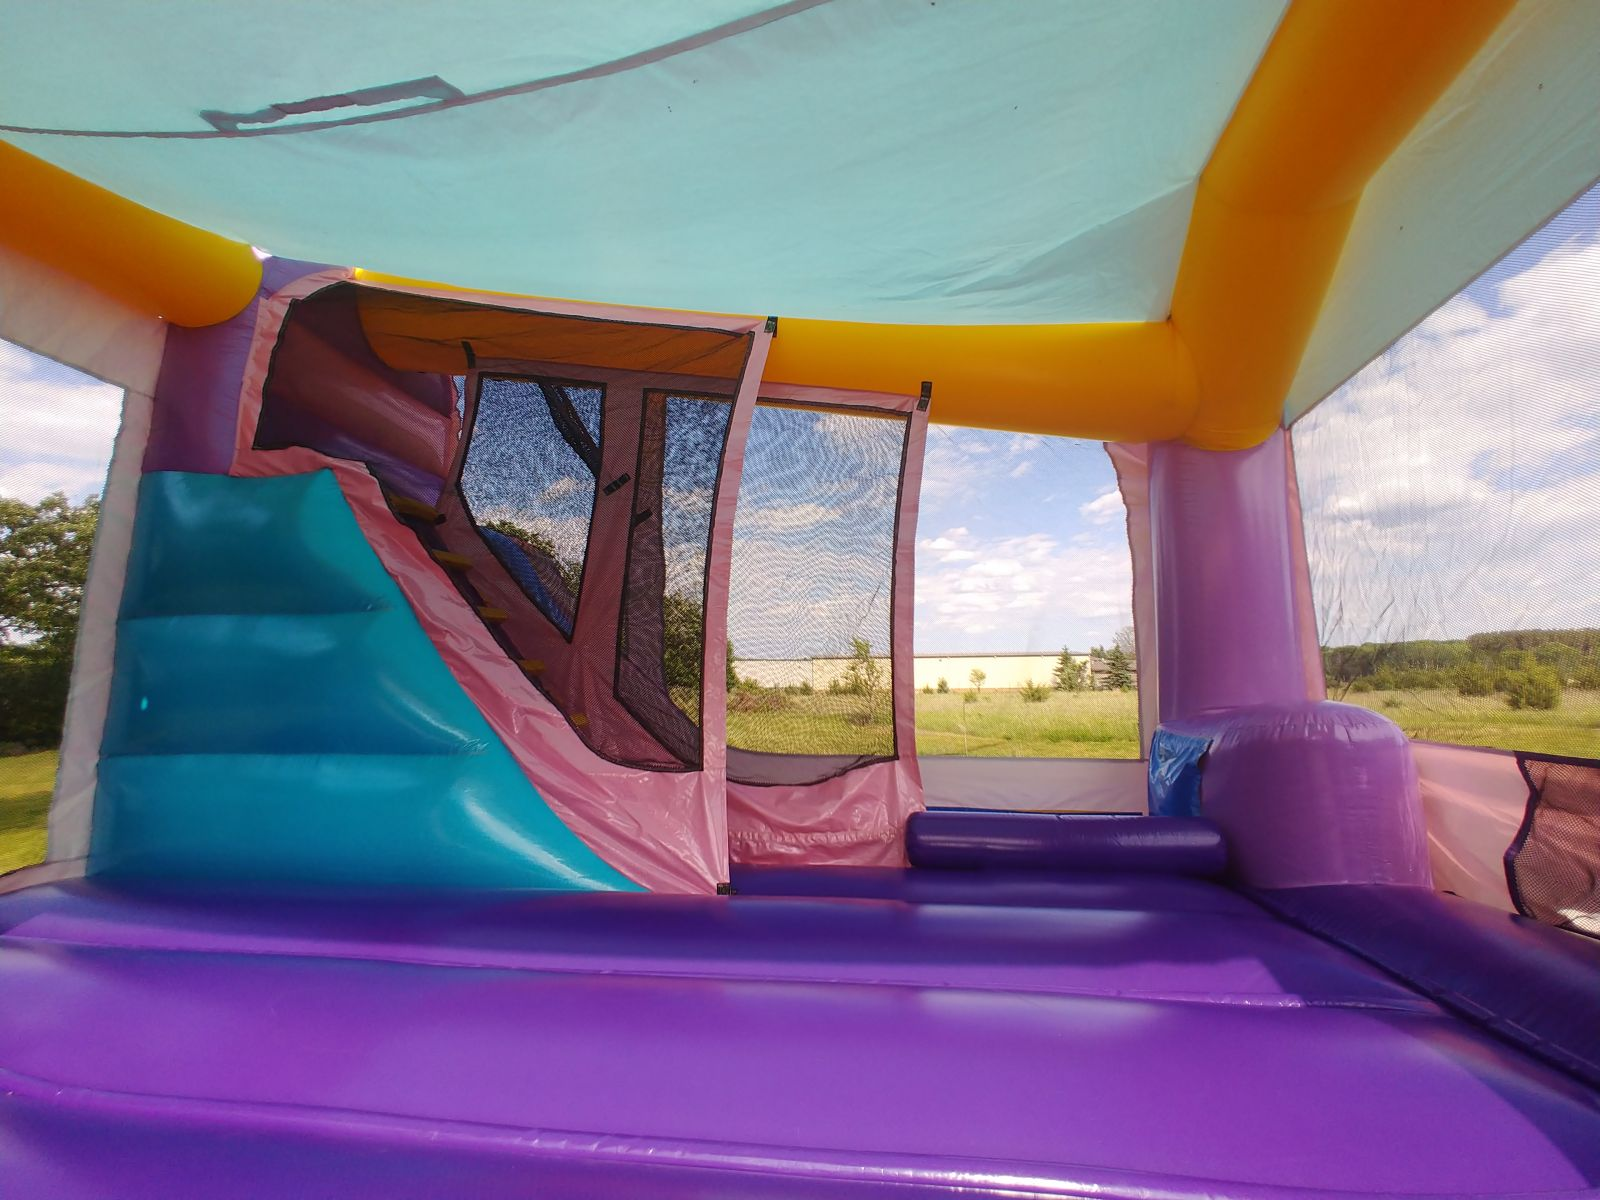 Interior view of slide and climbing wall area inside bounce house rental from Froggy Hops